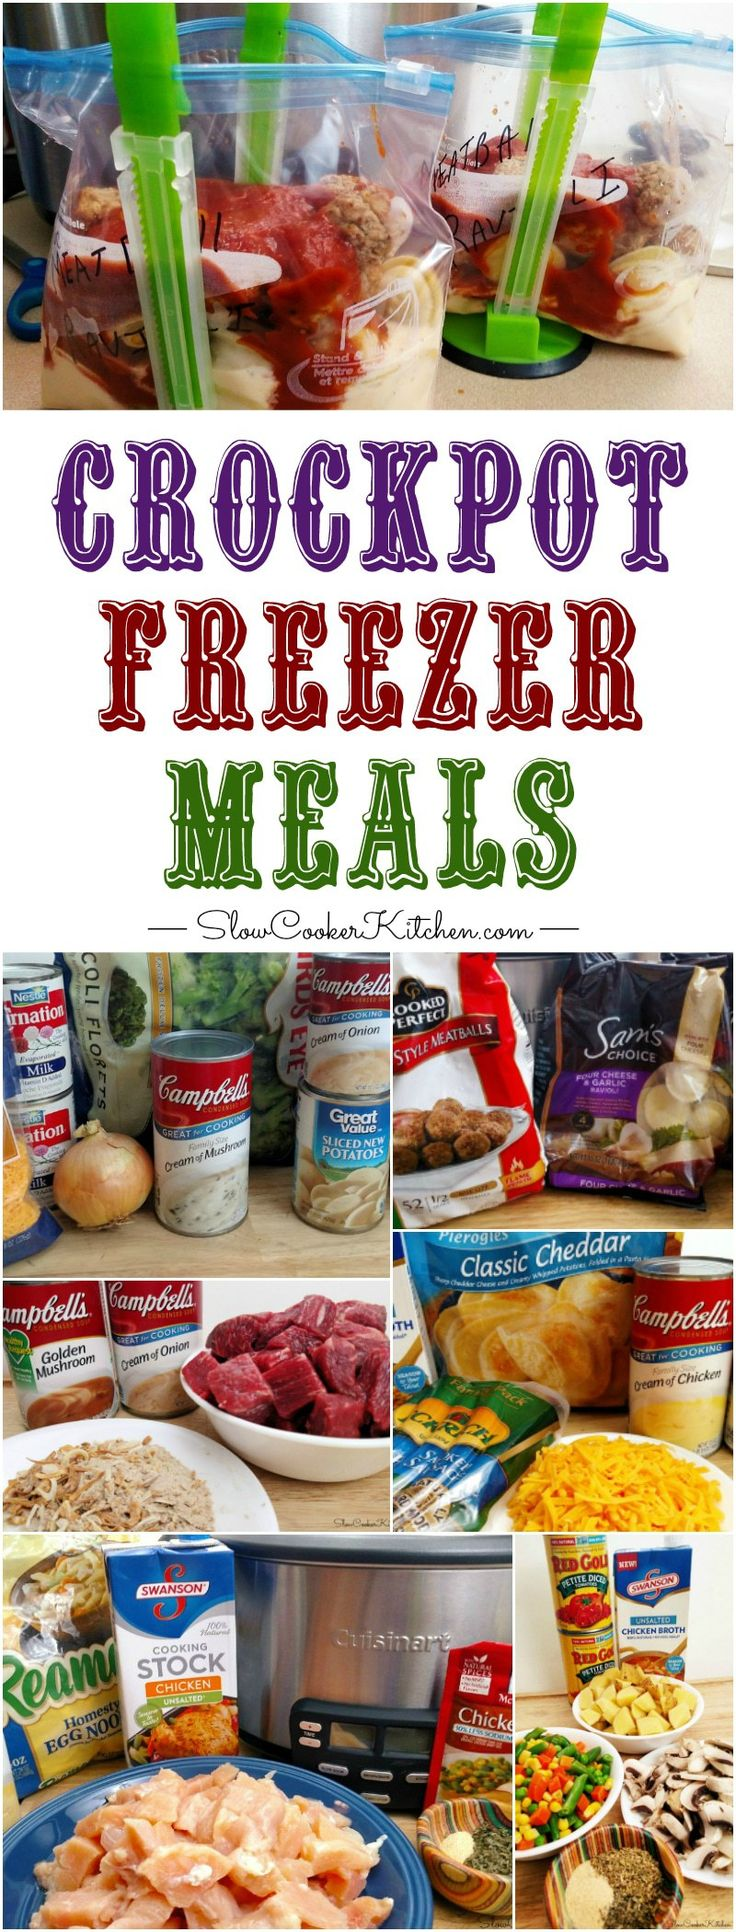 Crock Pot Freezer Meals--Great ideas for freezer and crock pot meals for those busy nights. I definitely need to start using these more.